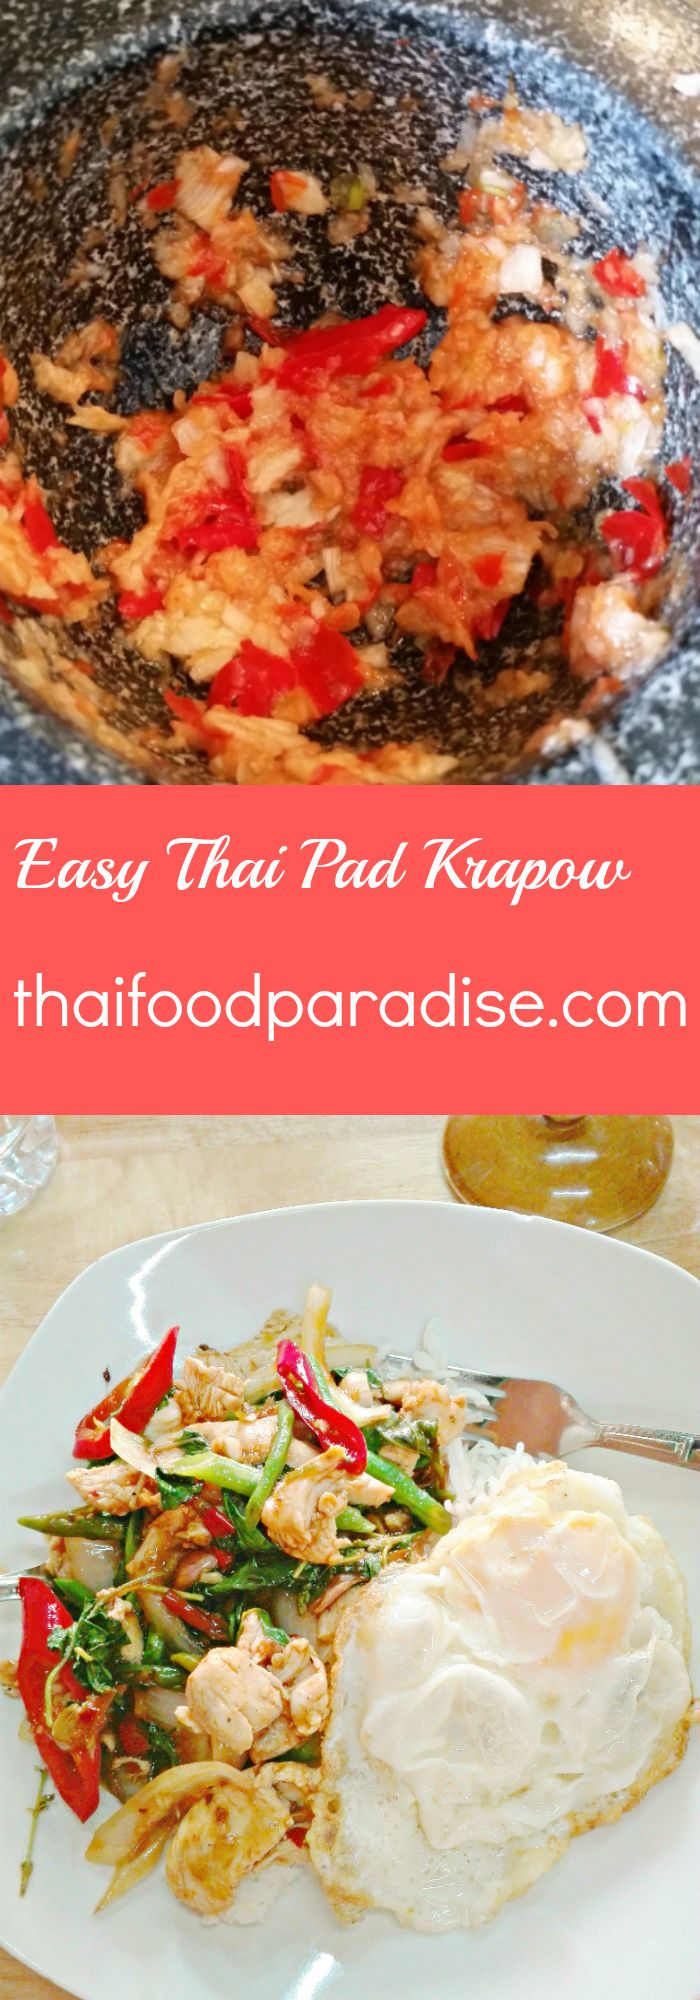 Pad krapow or stir fried holy basil is a classic thai food recipe pad krapow or stir fried holy basil is a classic thai food recipe forumfinder Images